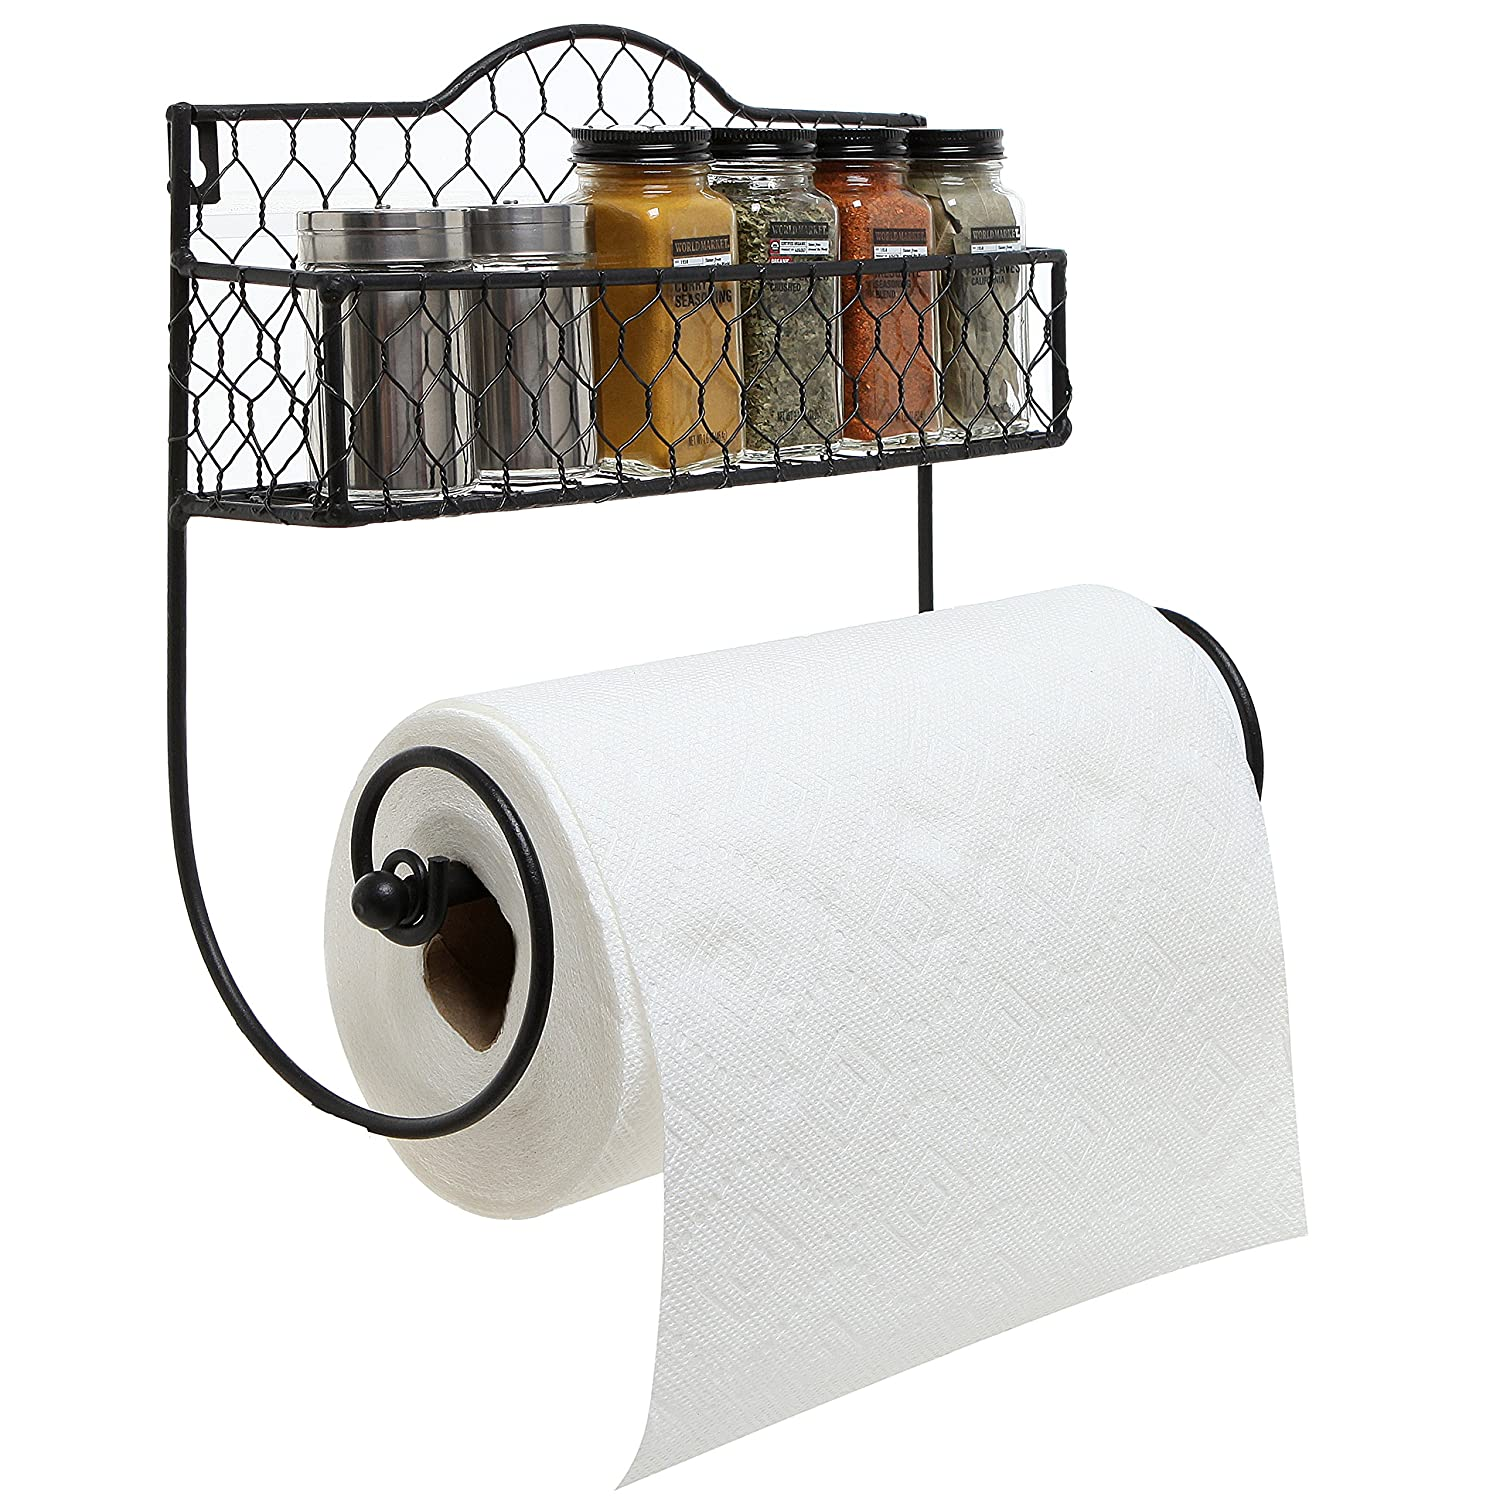 pinterest of ideas paper attachment awesome bathroom toilet storage home about sets design holder towel